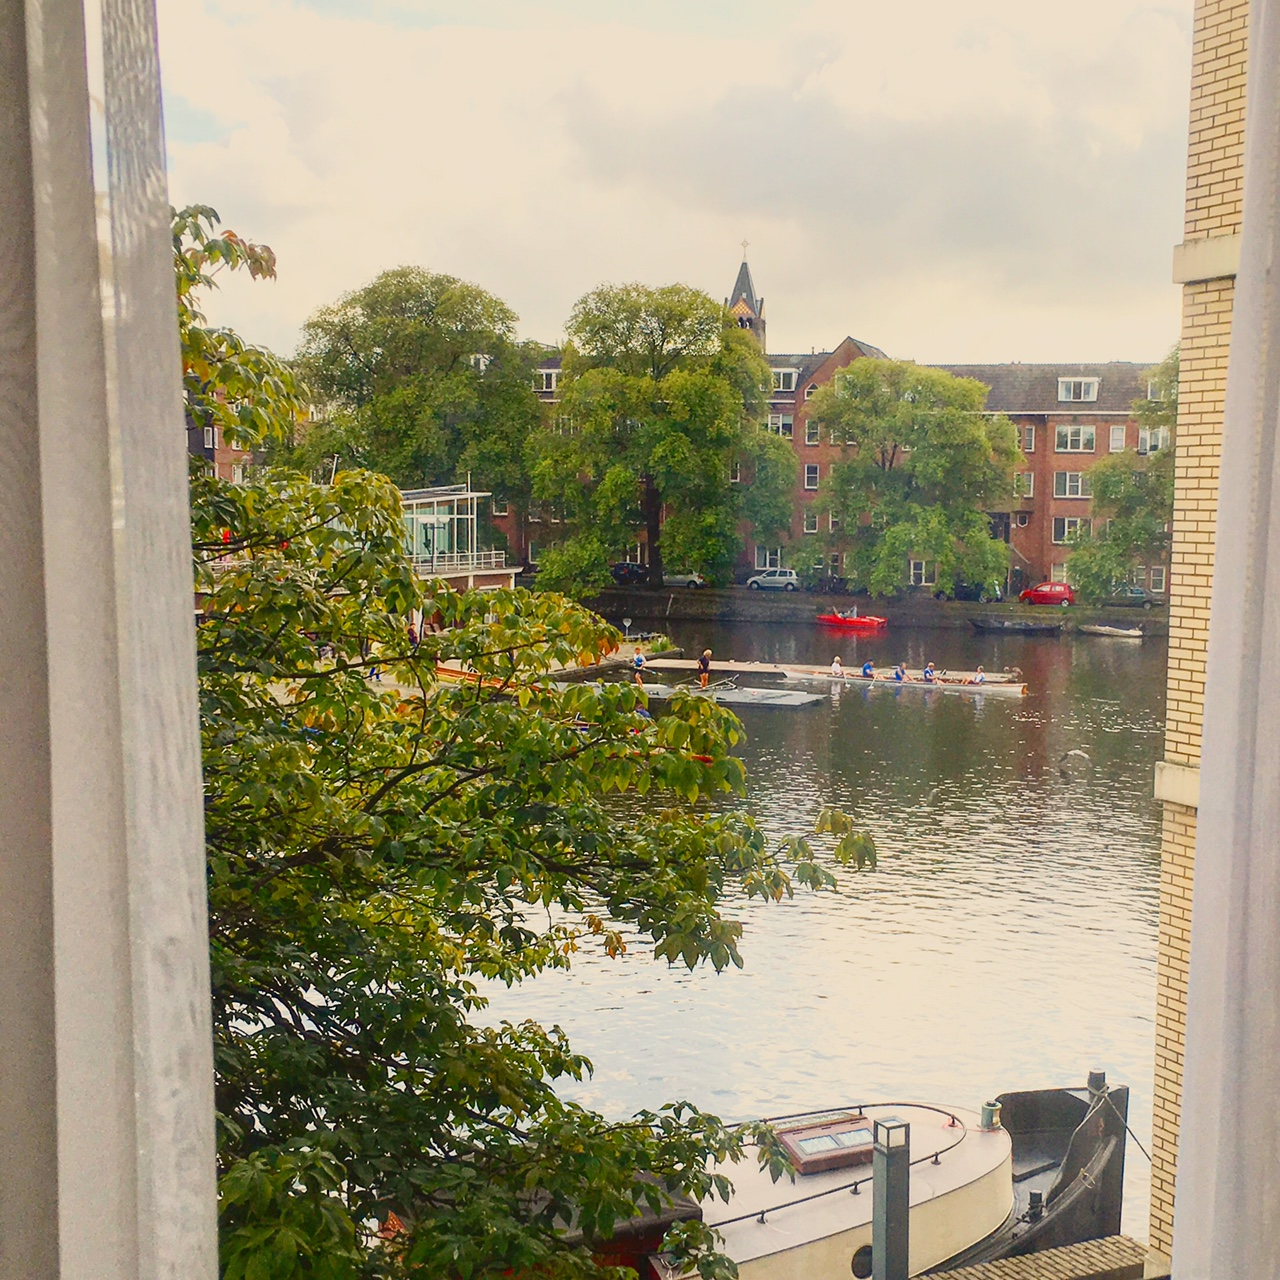 "In the morning, people docking and renting boats at the Roei- en Zeilvereniging ""De Amstel"" boating club outside of my window."